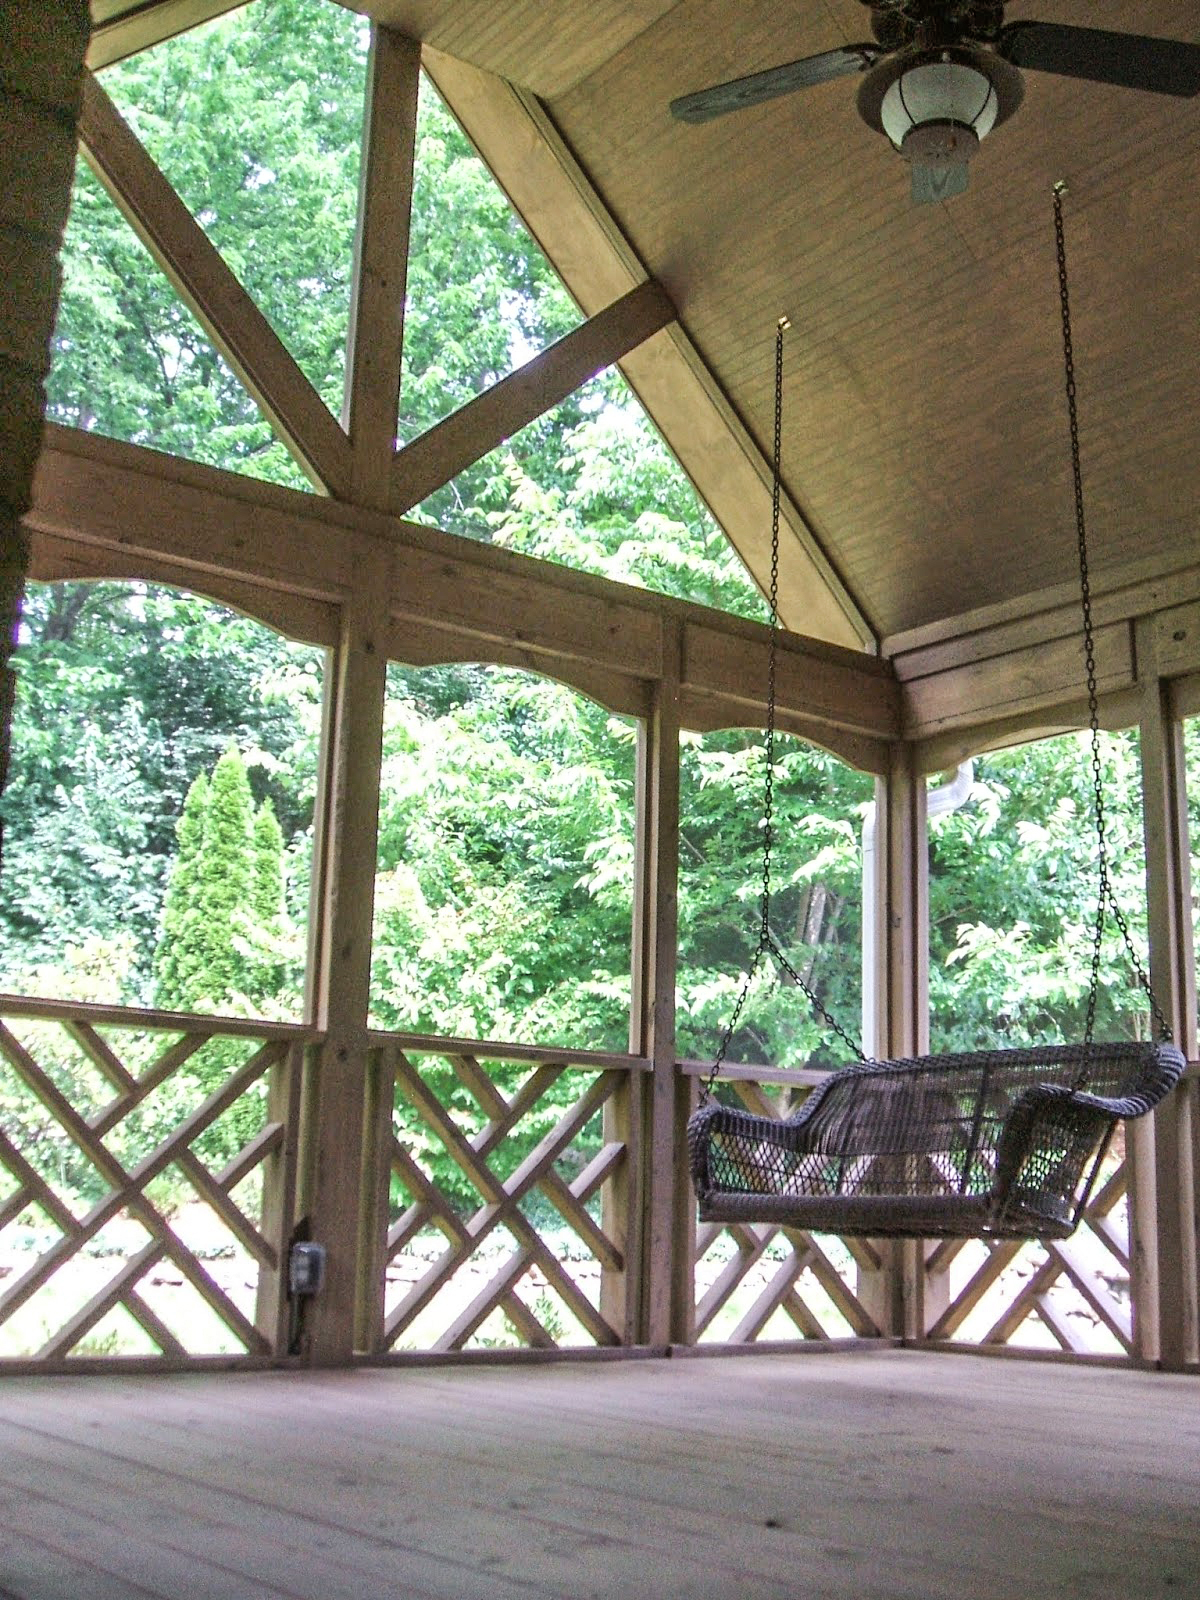 The Johnson's Screened Porch - After